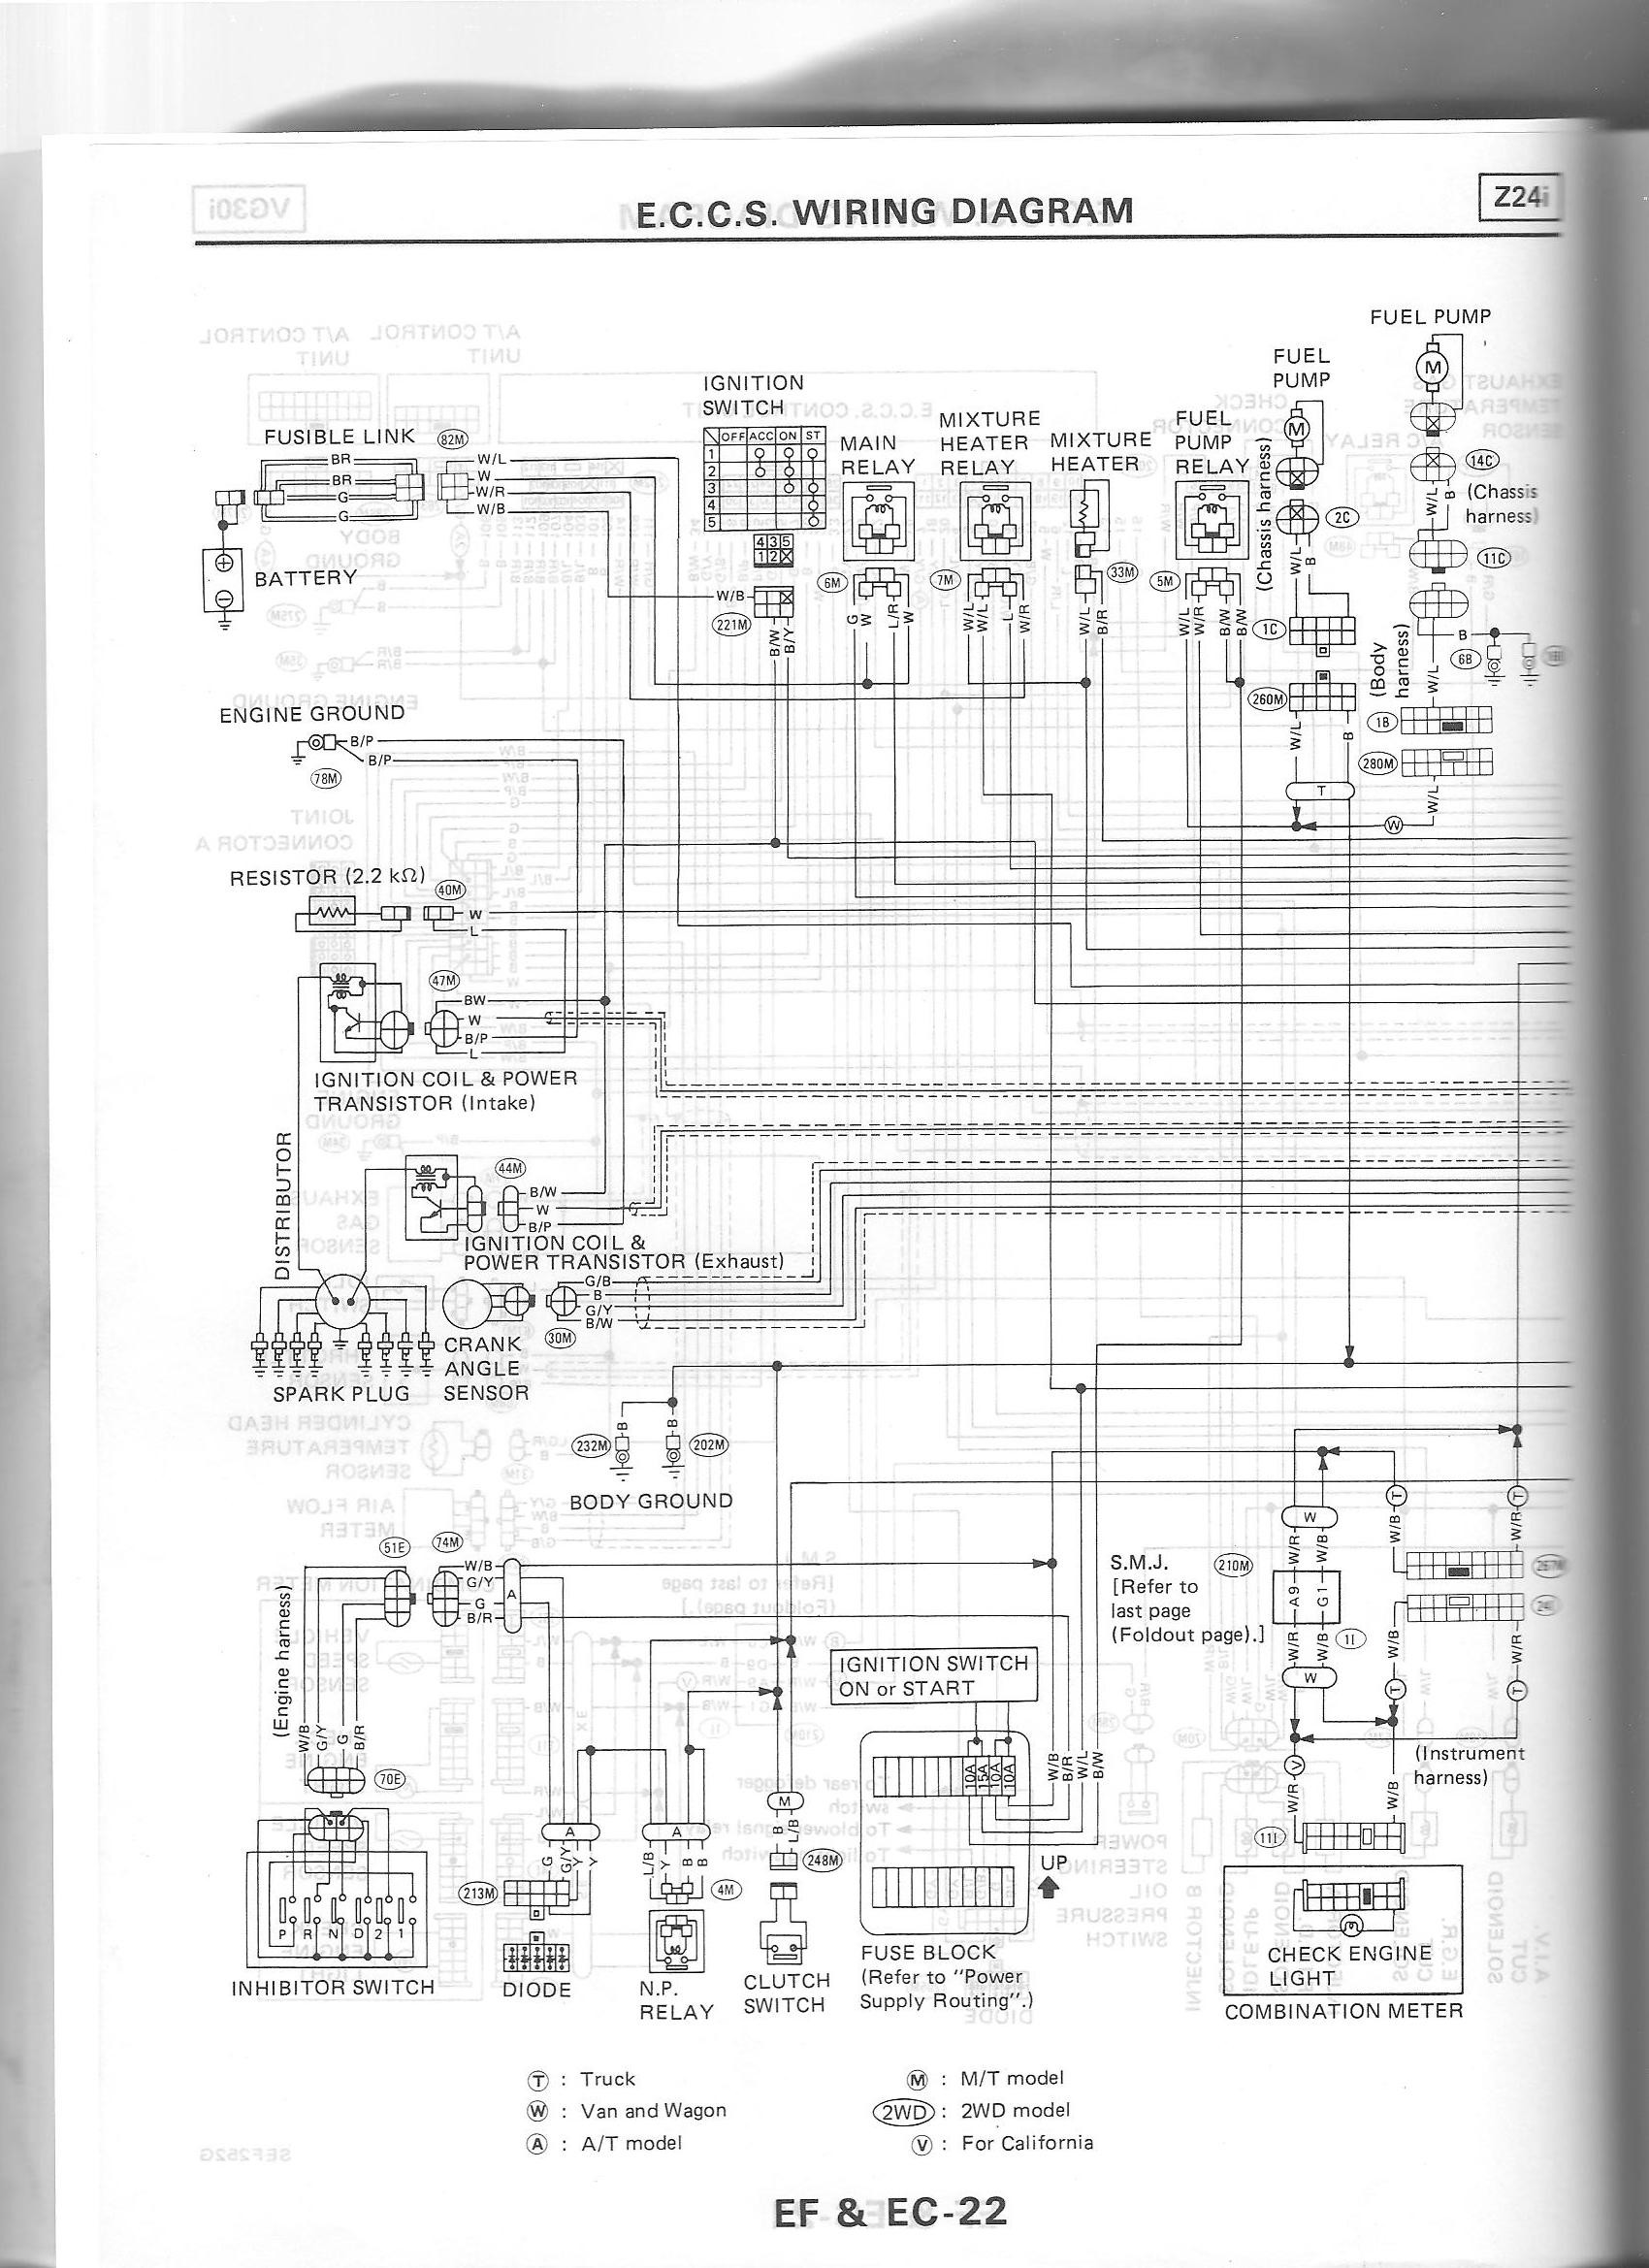 1995 Nissan Wiring Harness | Wiring Diagram on